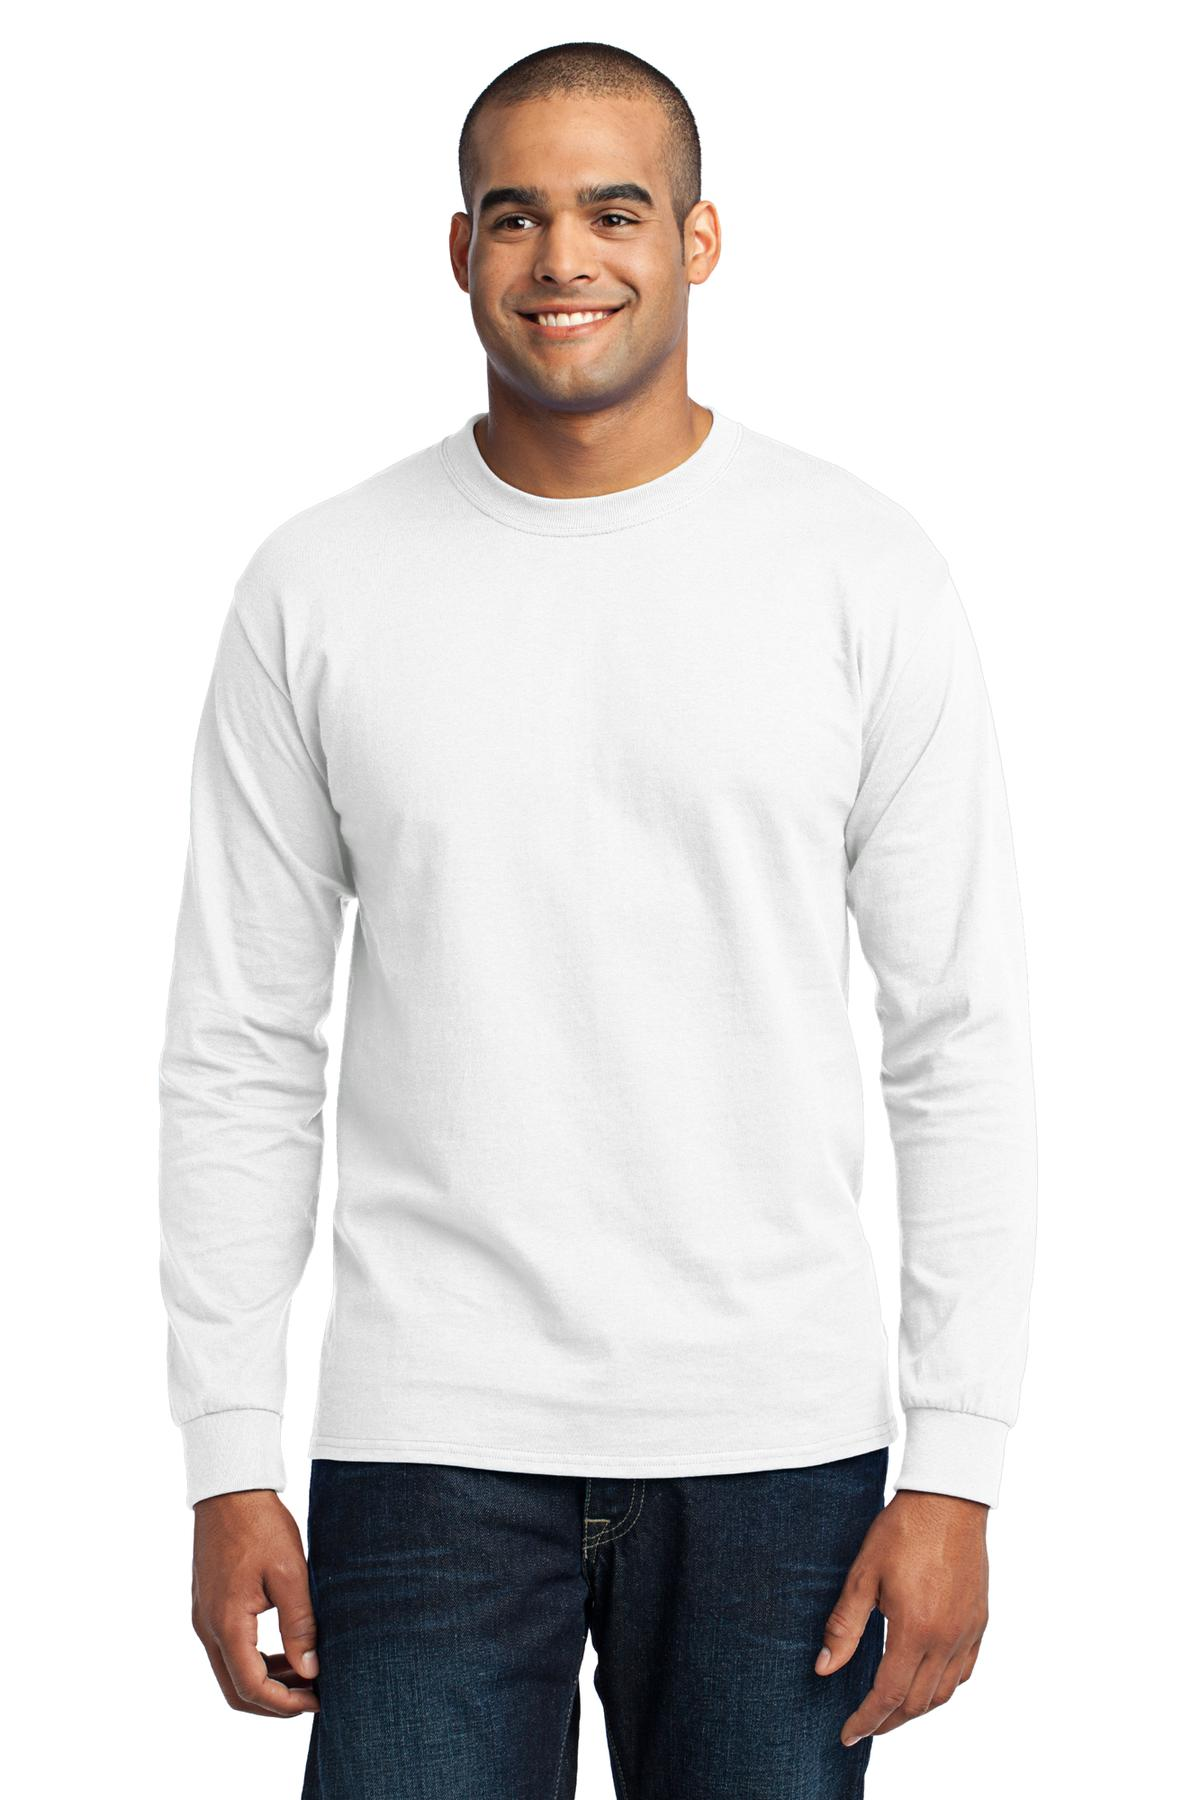 Port & Company Mens Tall Long Sleeve Blend 50/50 Cotton/Poly Tee T ...